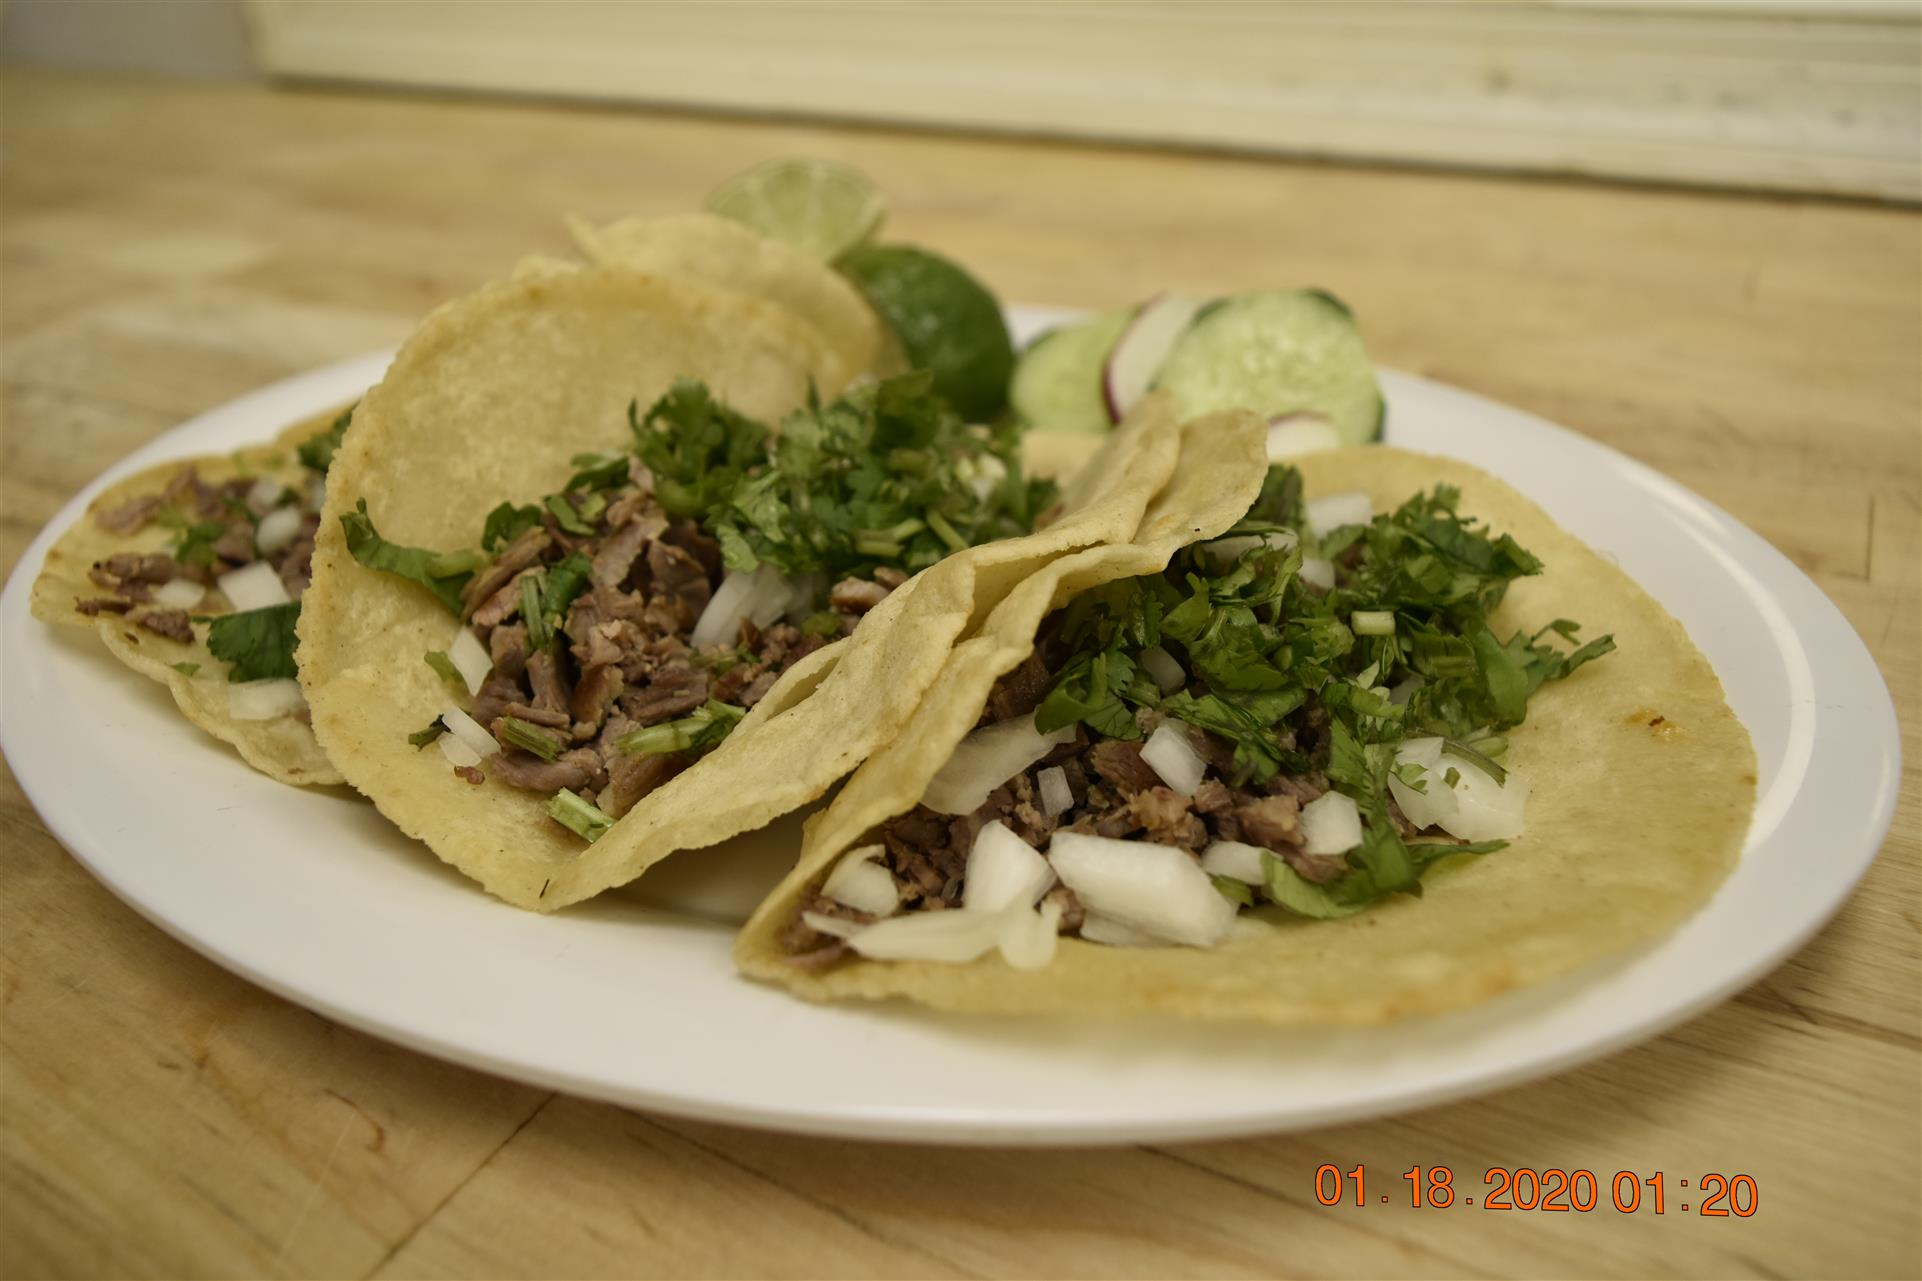 three tortillas with chopped steak and vegetables